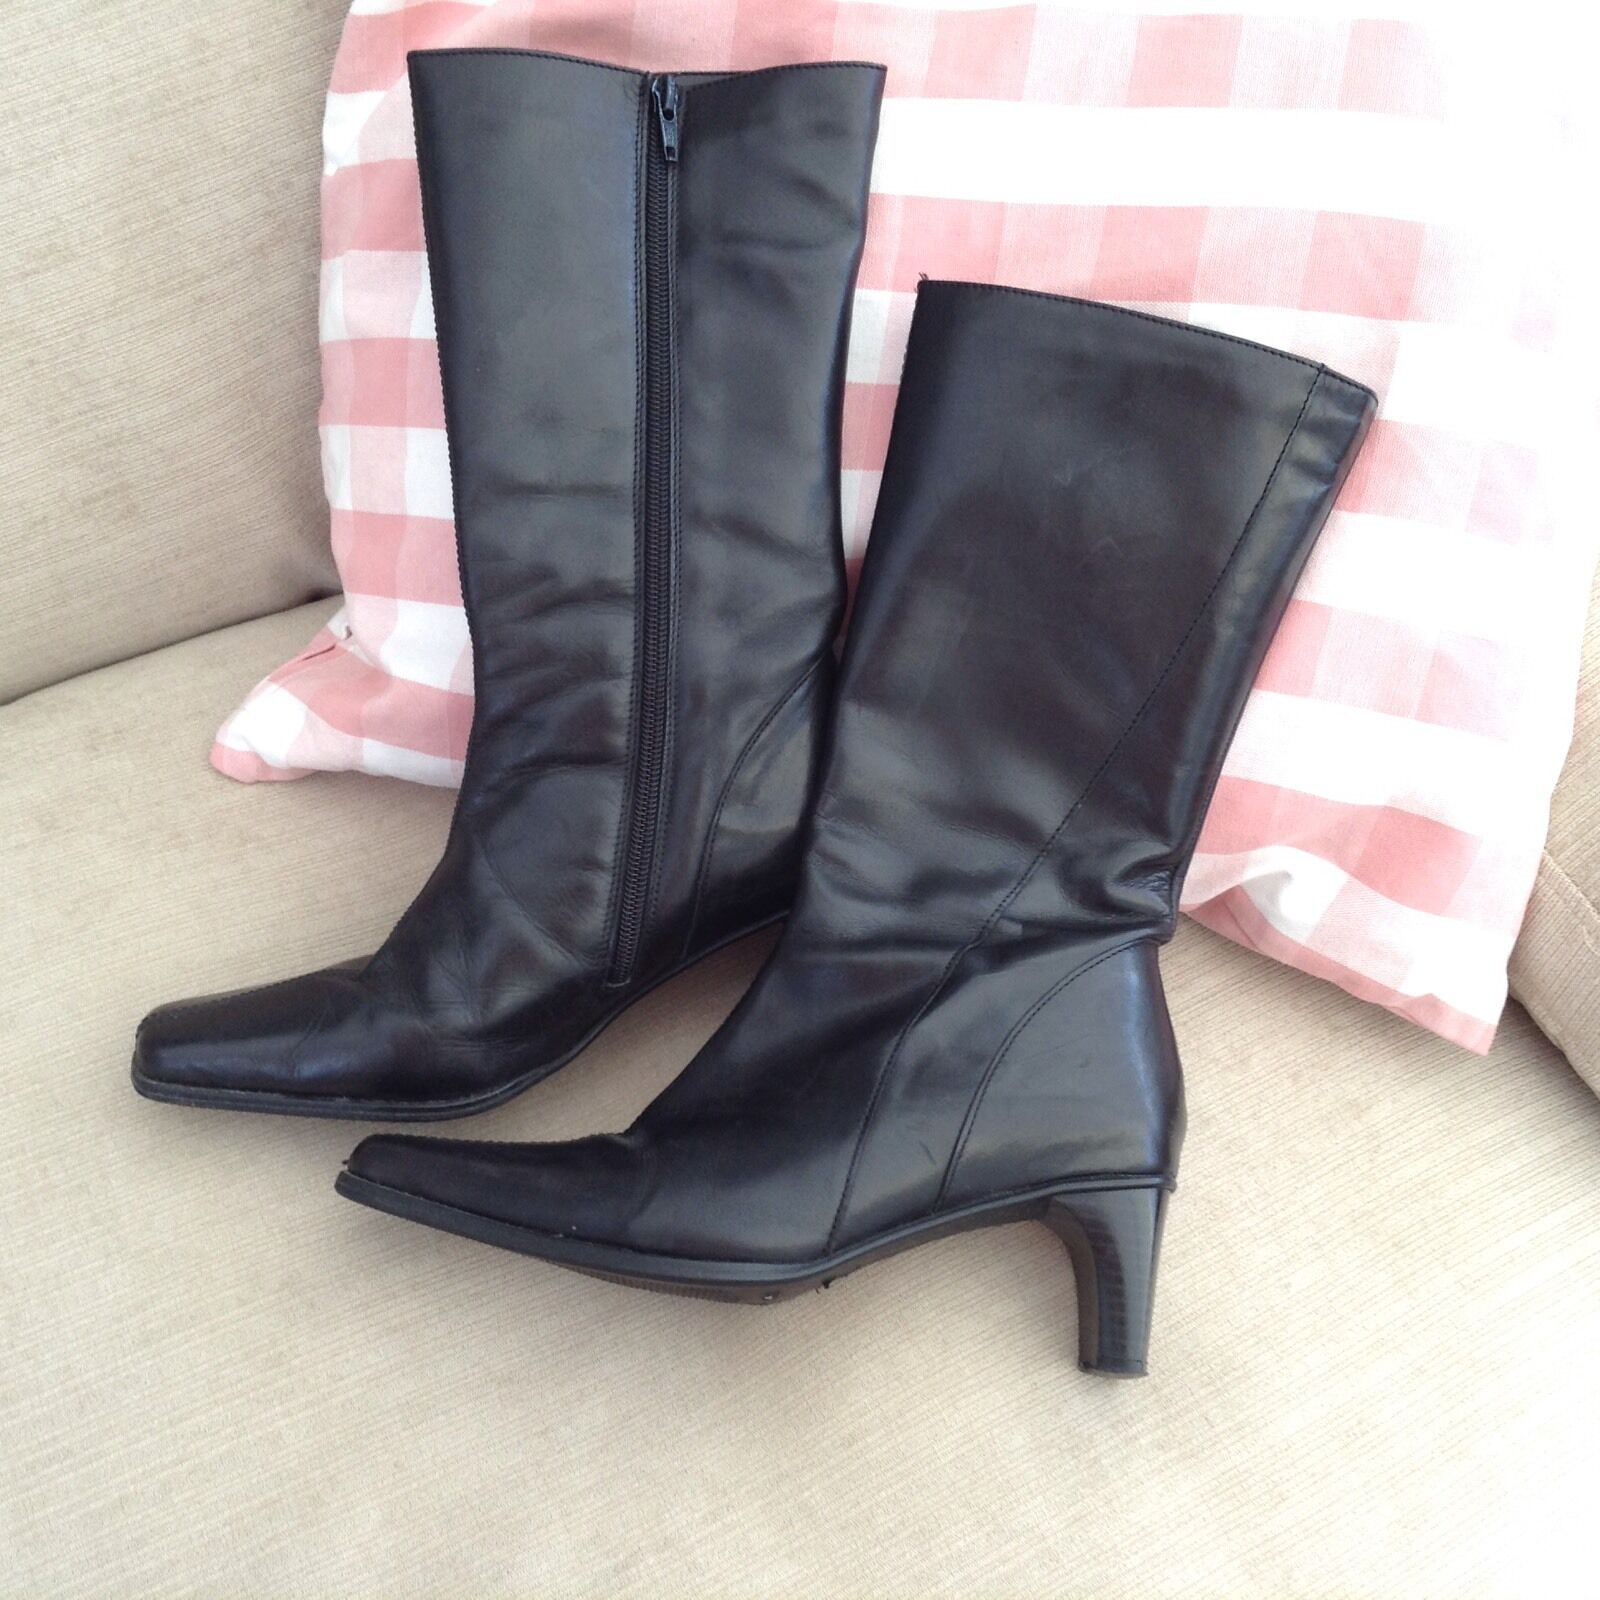 BLACK LEATHER  MID CALF BOOTS SIZE UK 4 EUR 37